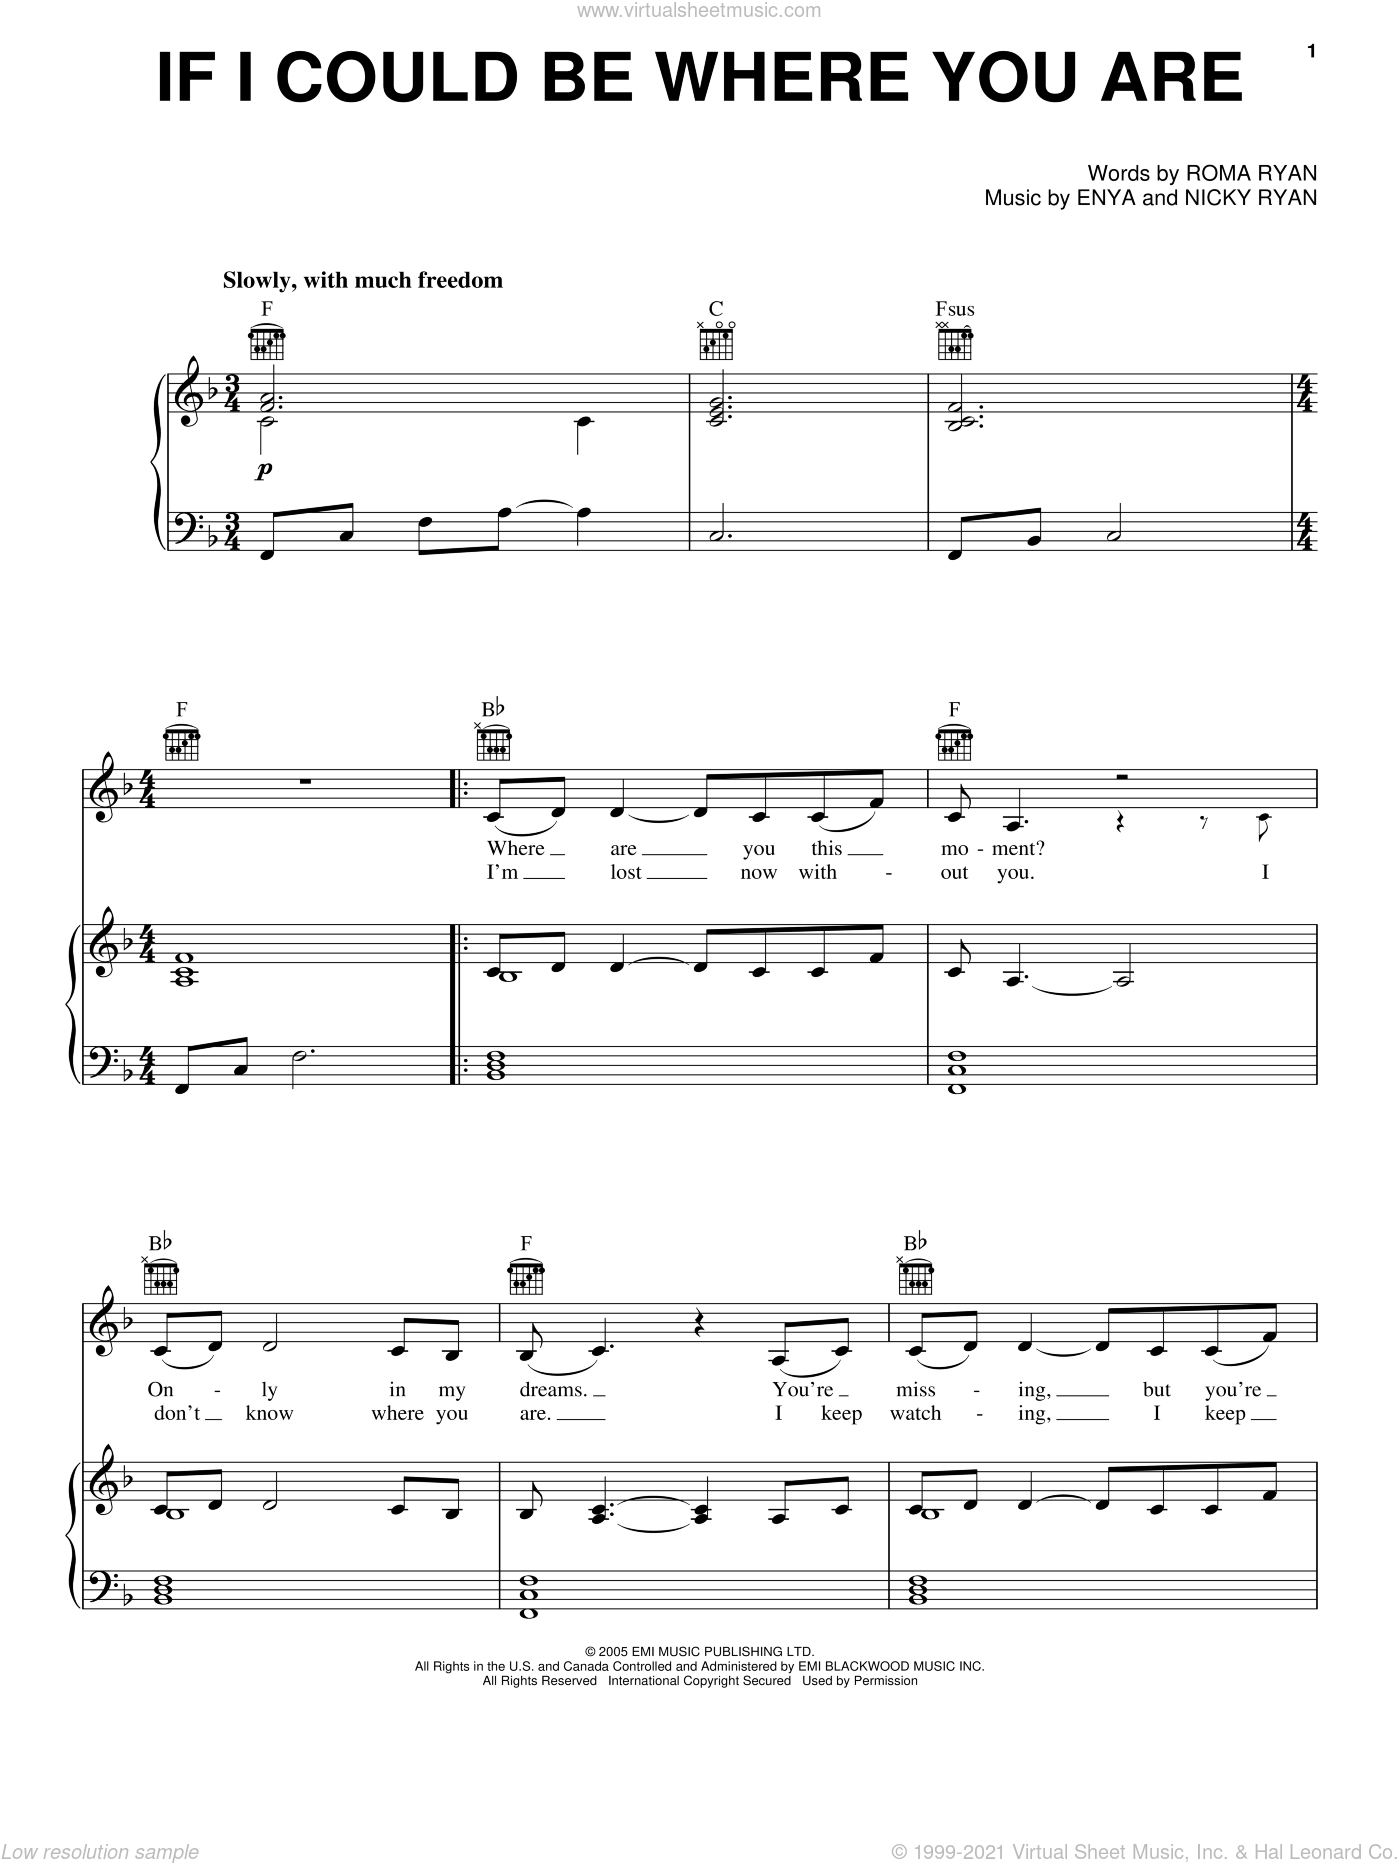 If I Could Be Where You Are sheet music for voice, piano or guitar by Enya, Nicky Ryan and Roma Ryan, intermediate skill level